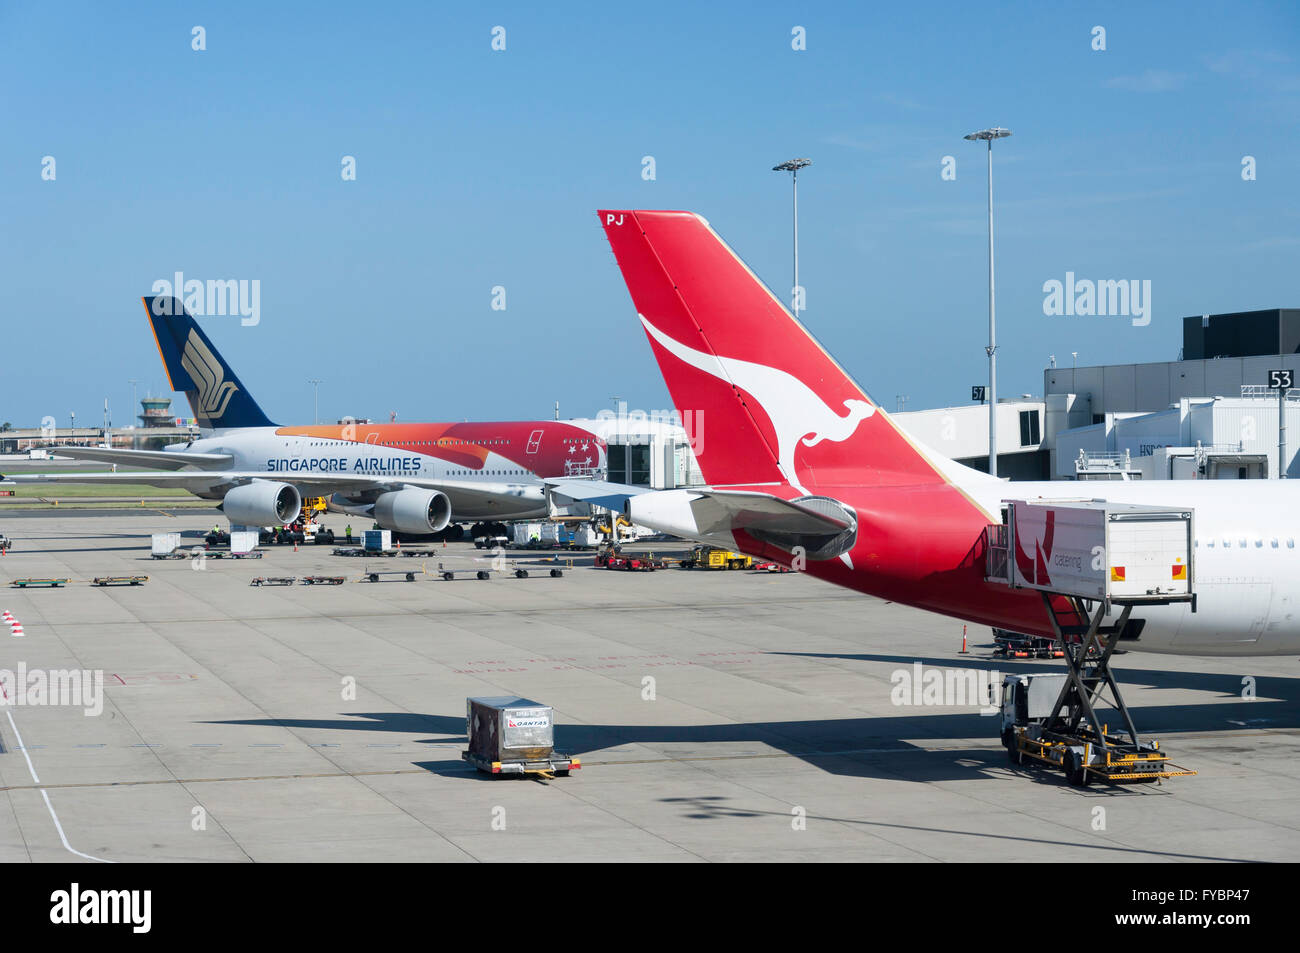 Qantas and Singapore Airlines aircraft at Sydney Kingsford Smith Airport, Mascot, Sydney, New South Wales, Australia Stock Photo